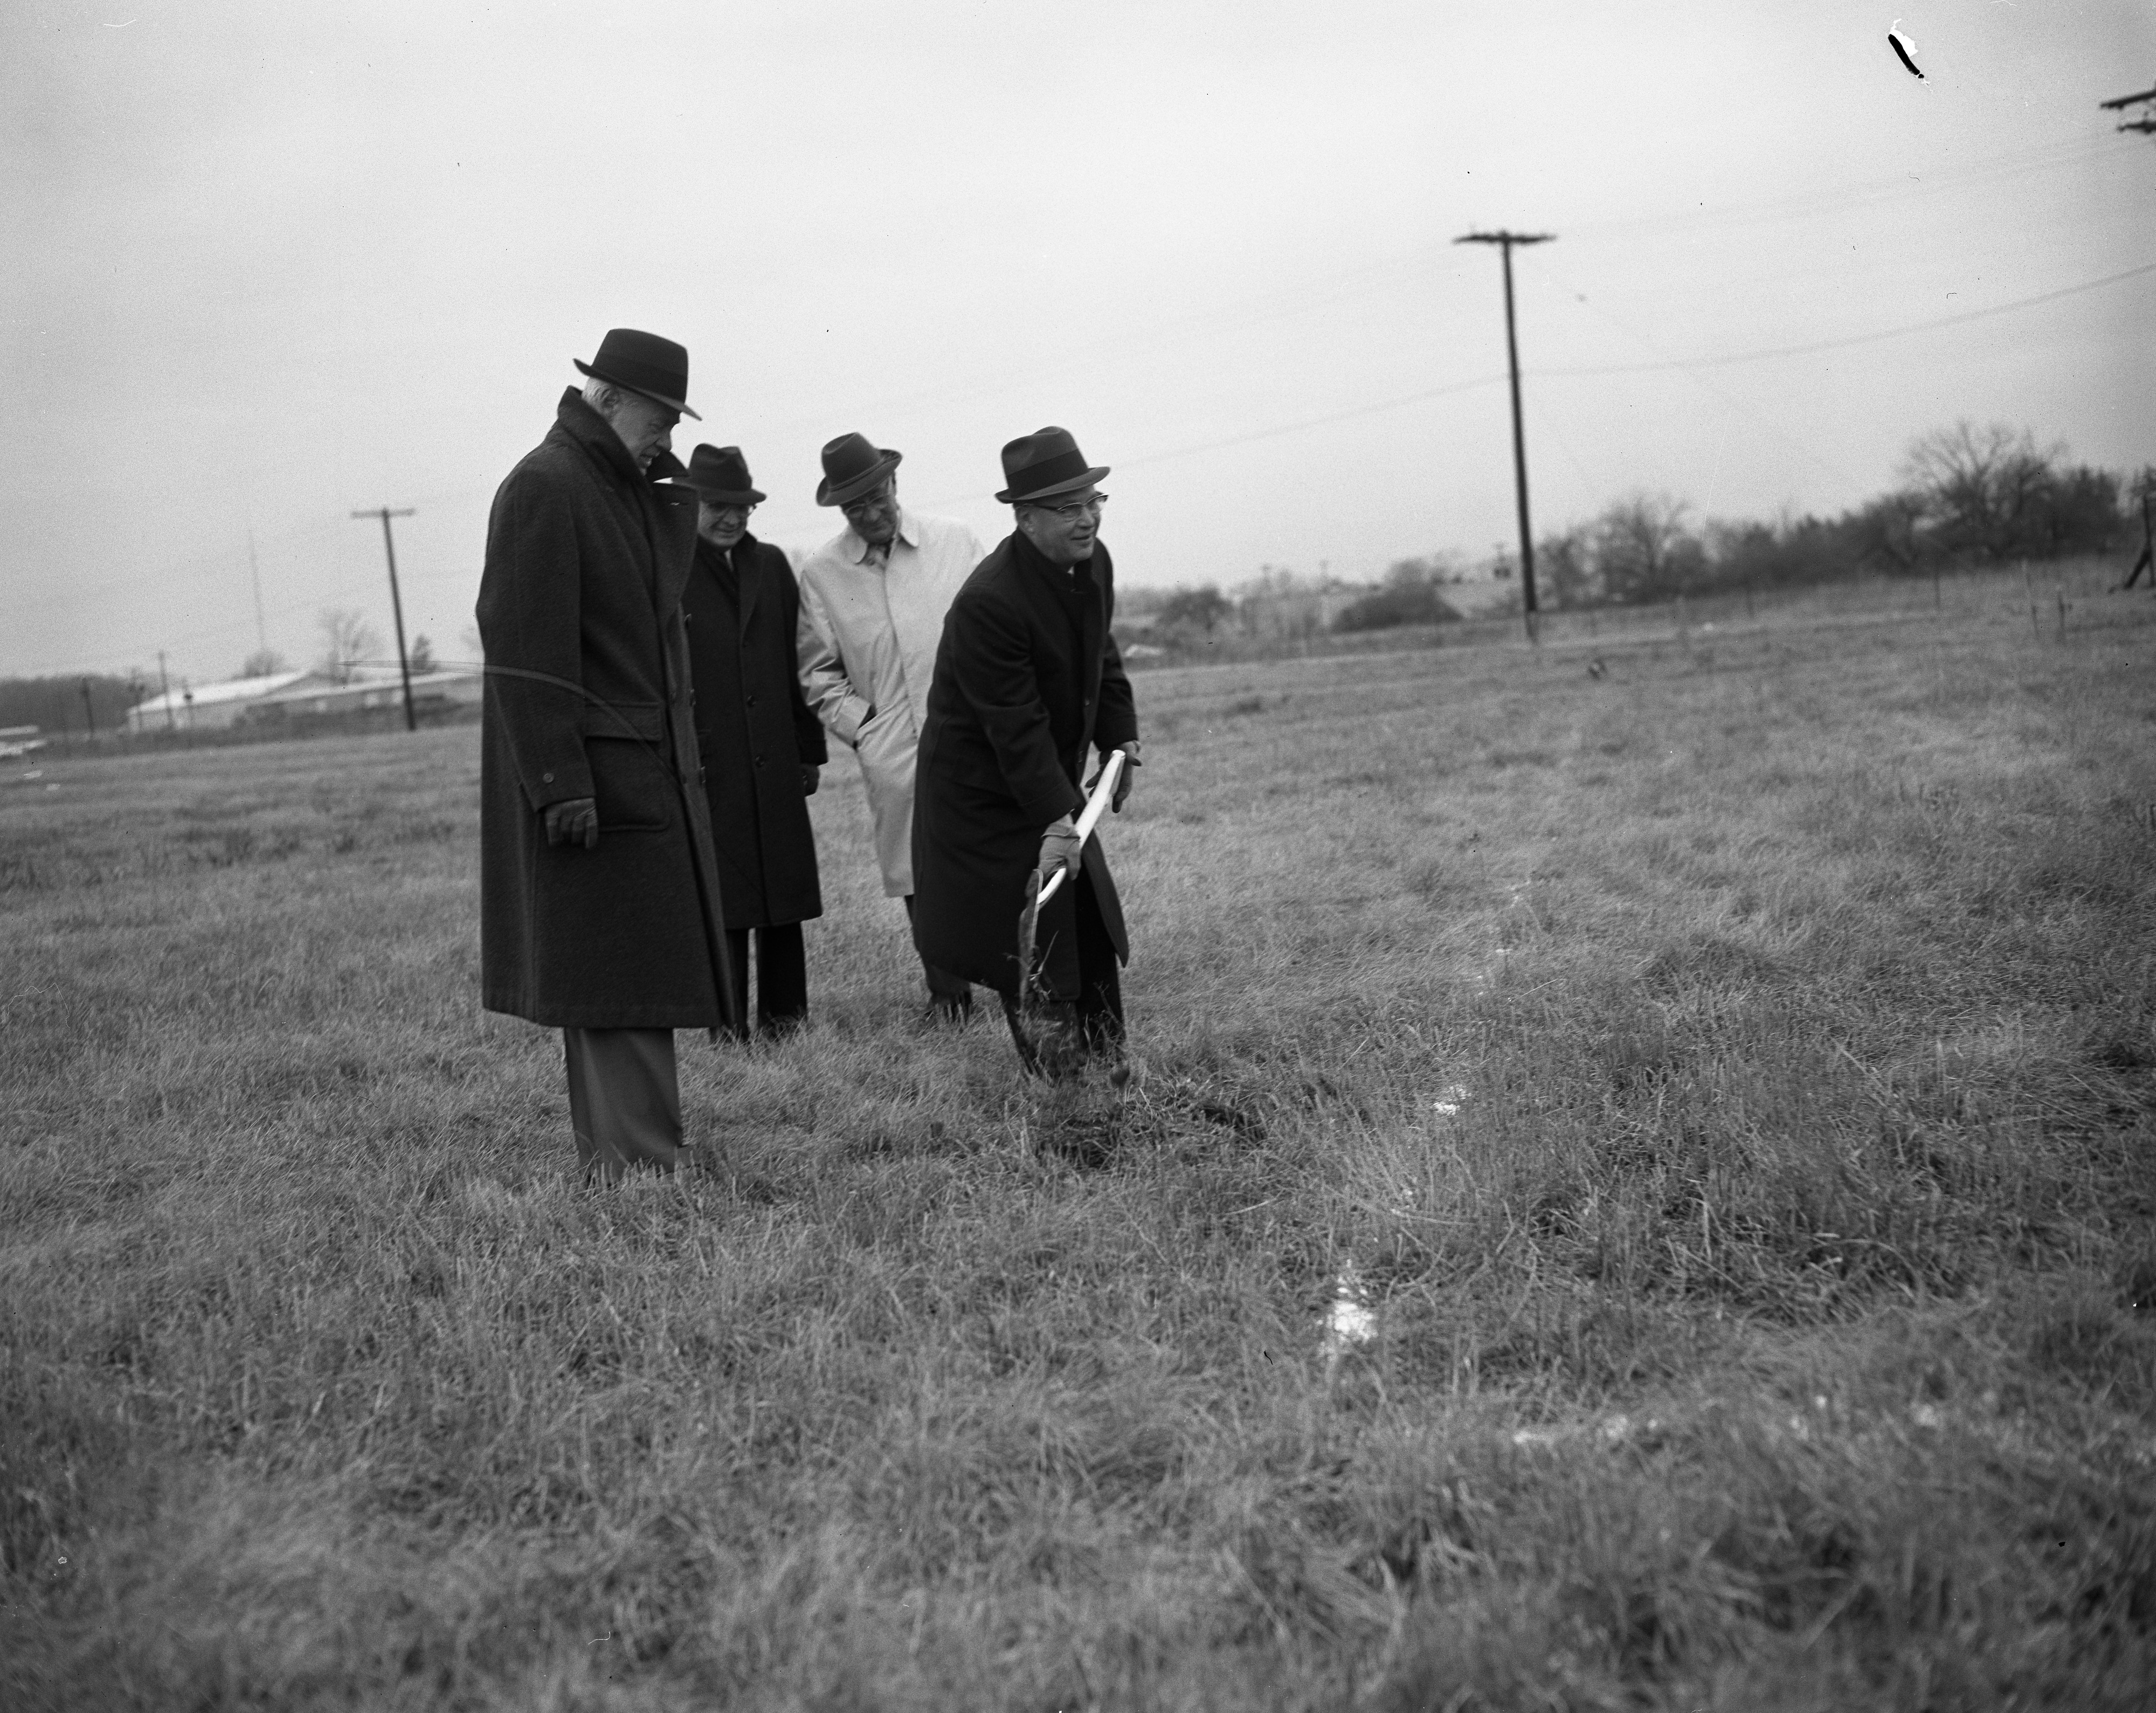 Groundbreaking Ceremony for Tecumseh Products New Research Laboratory In Ann Arbor Research Park, March 1964 image